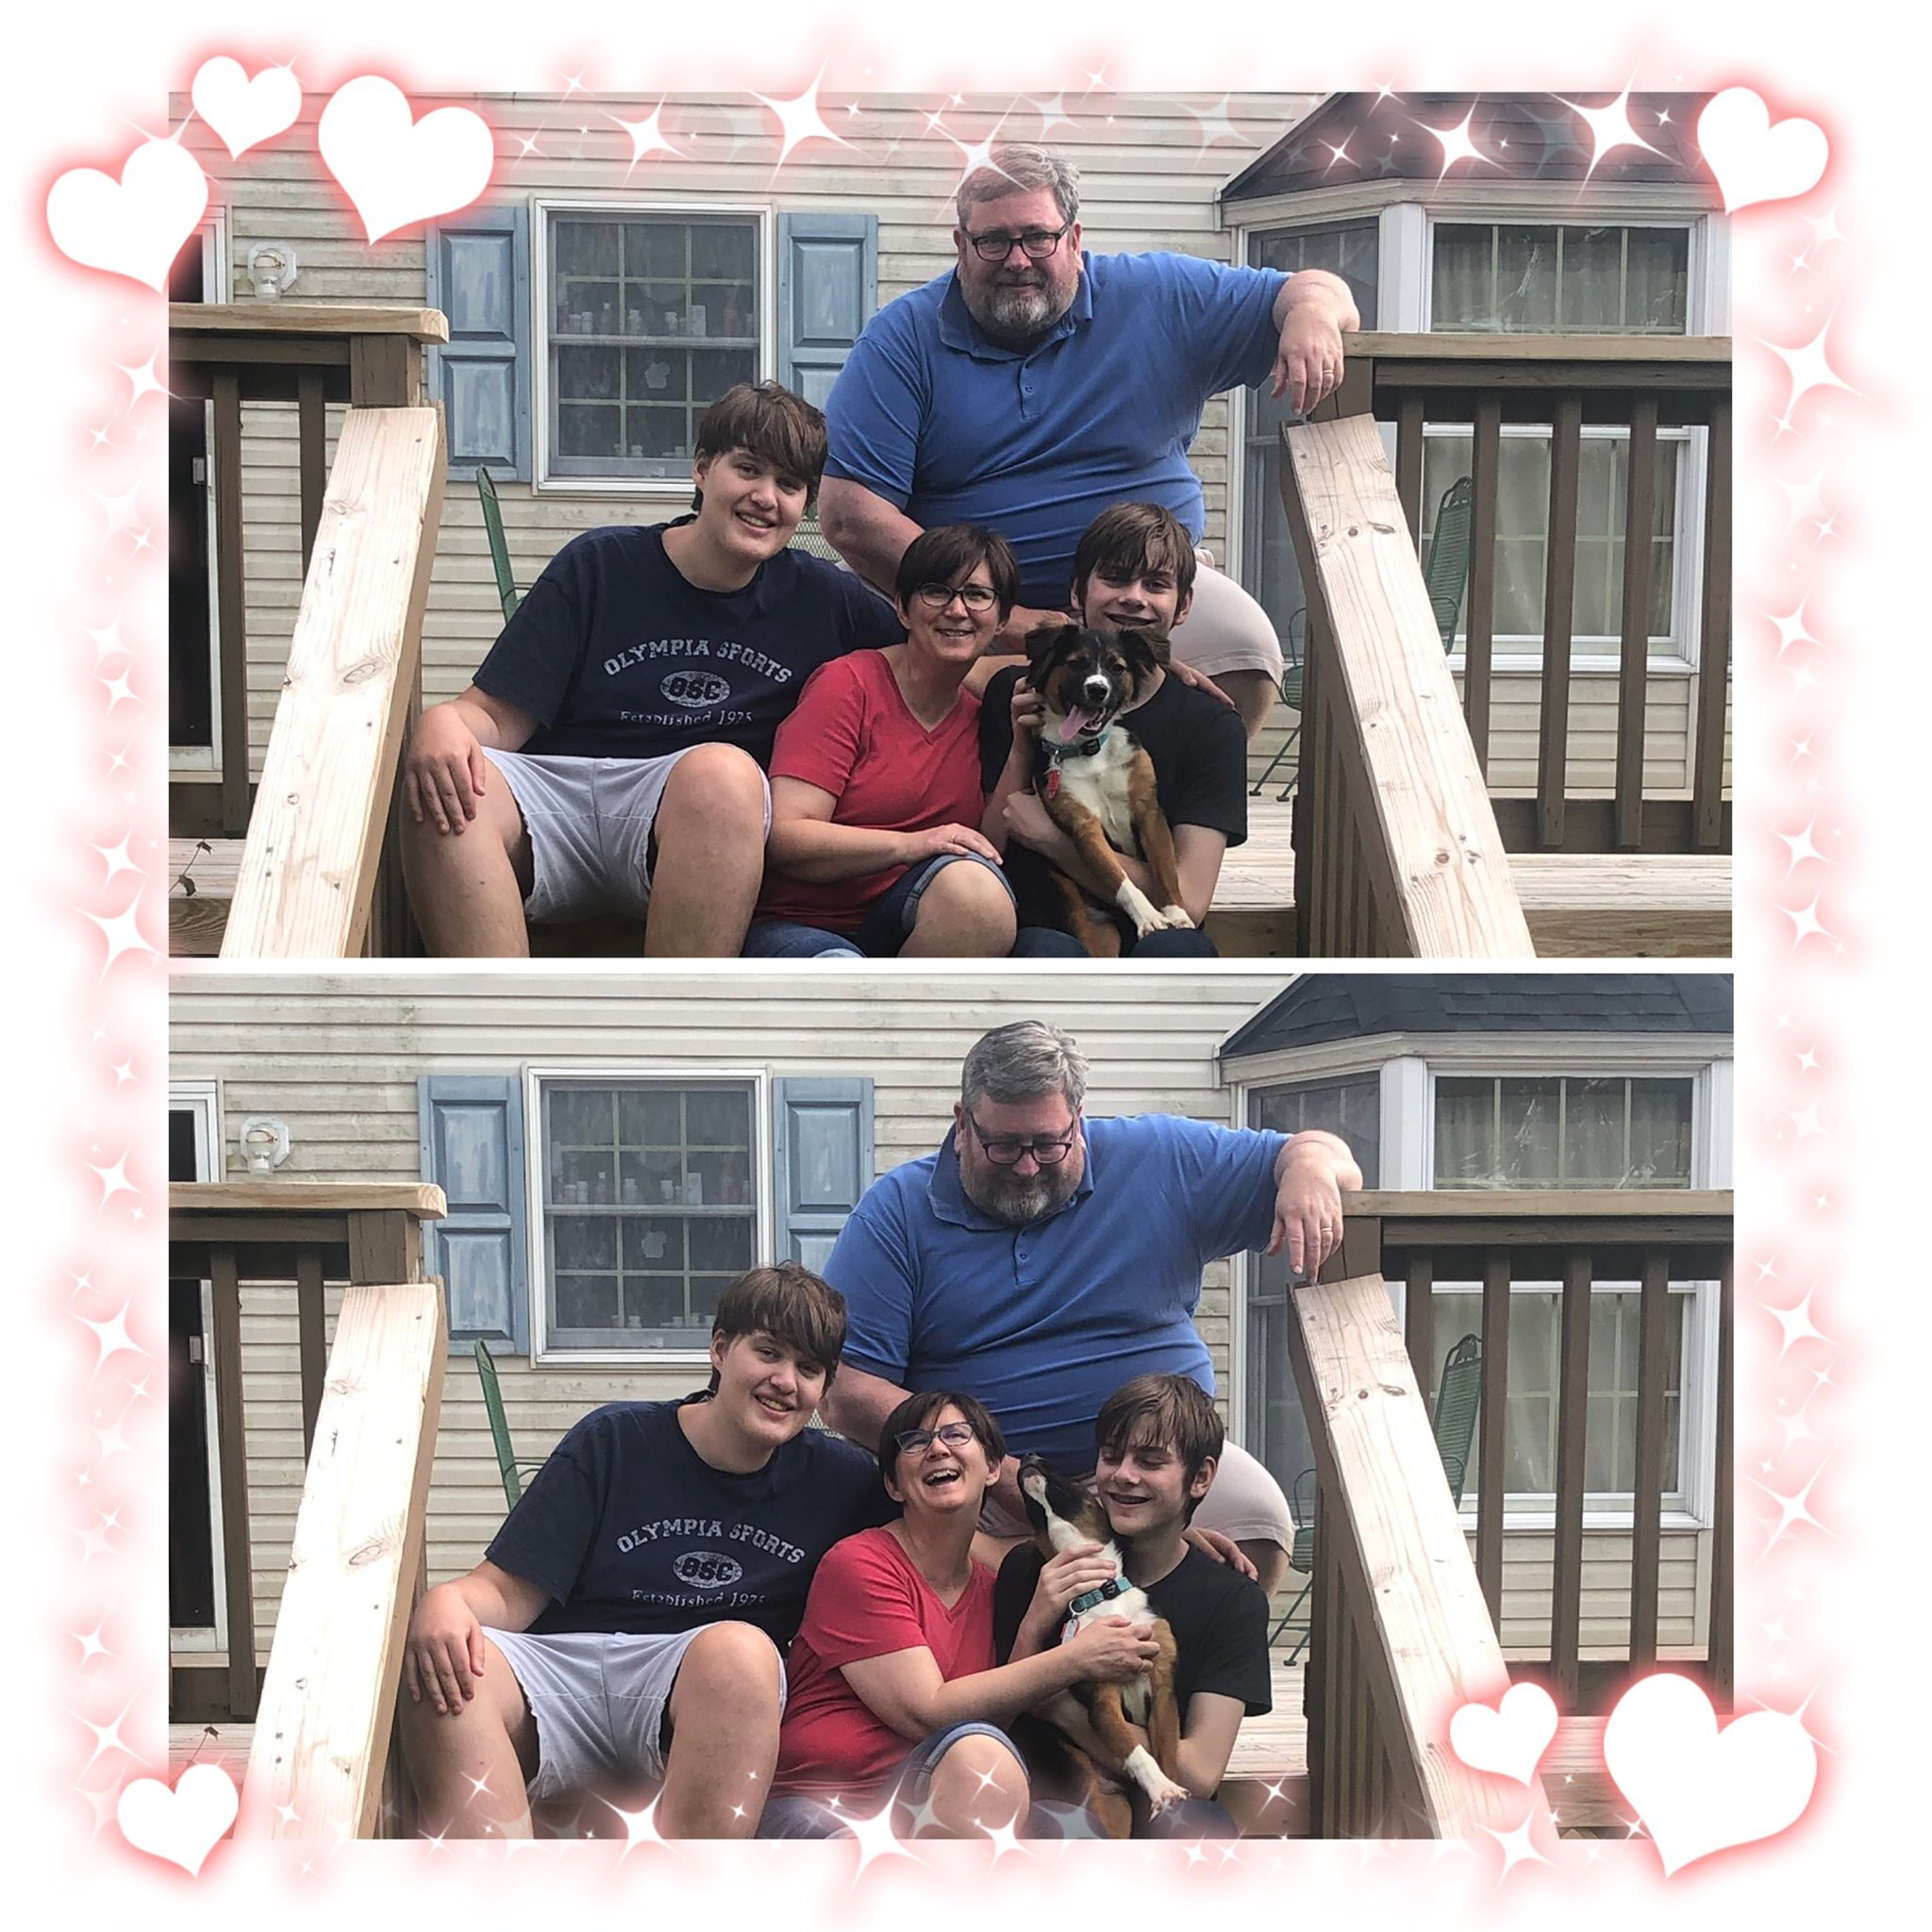 Crackerjack already adores his new family and huge yard!